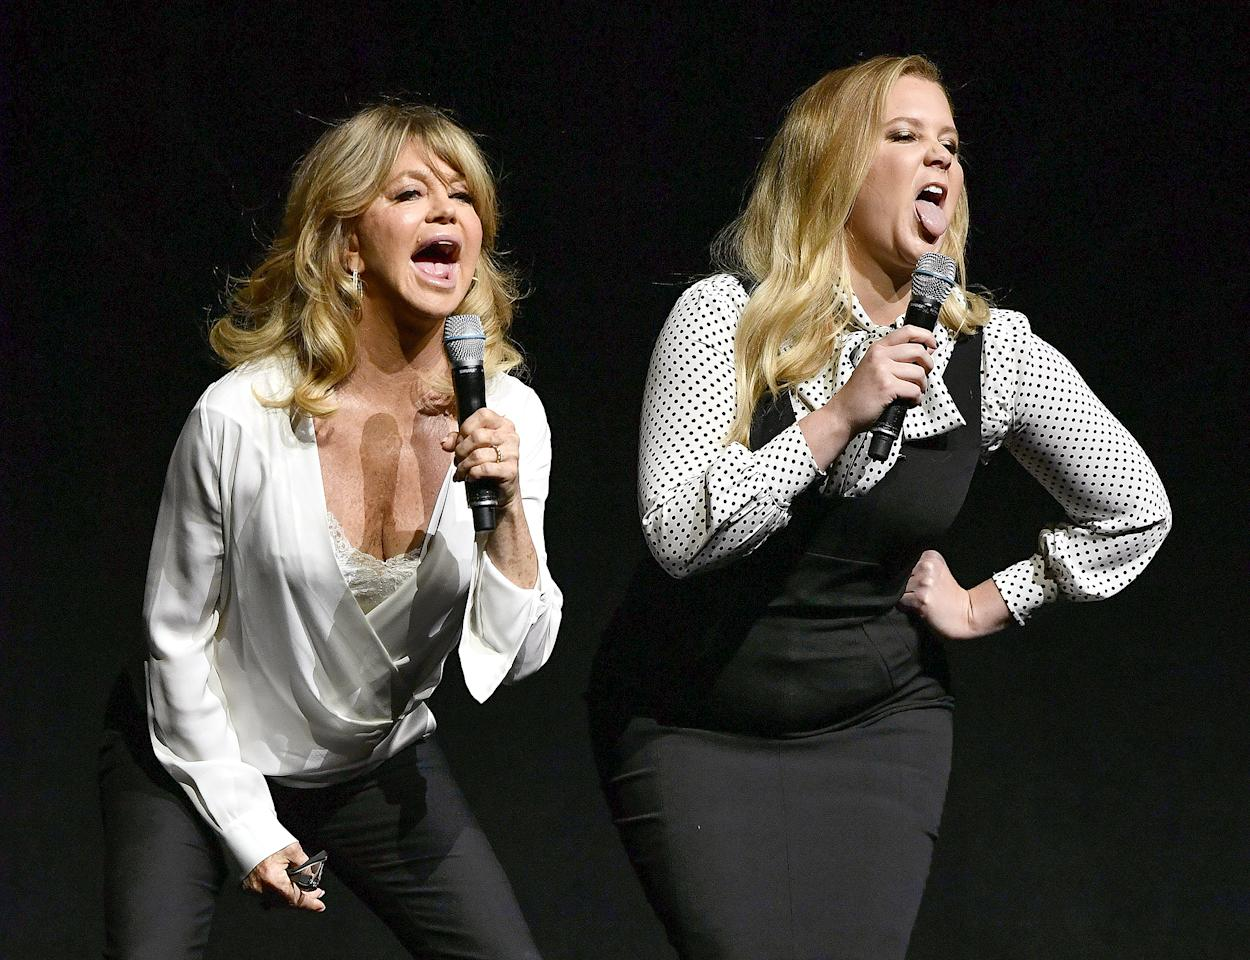 <p>Goldie Hawn and Amy Schumer get animated at a Fox presentation during CinemaCon on Thursday in Las Vegas.</p>